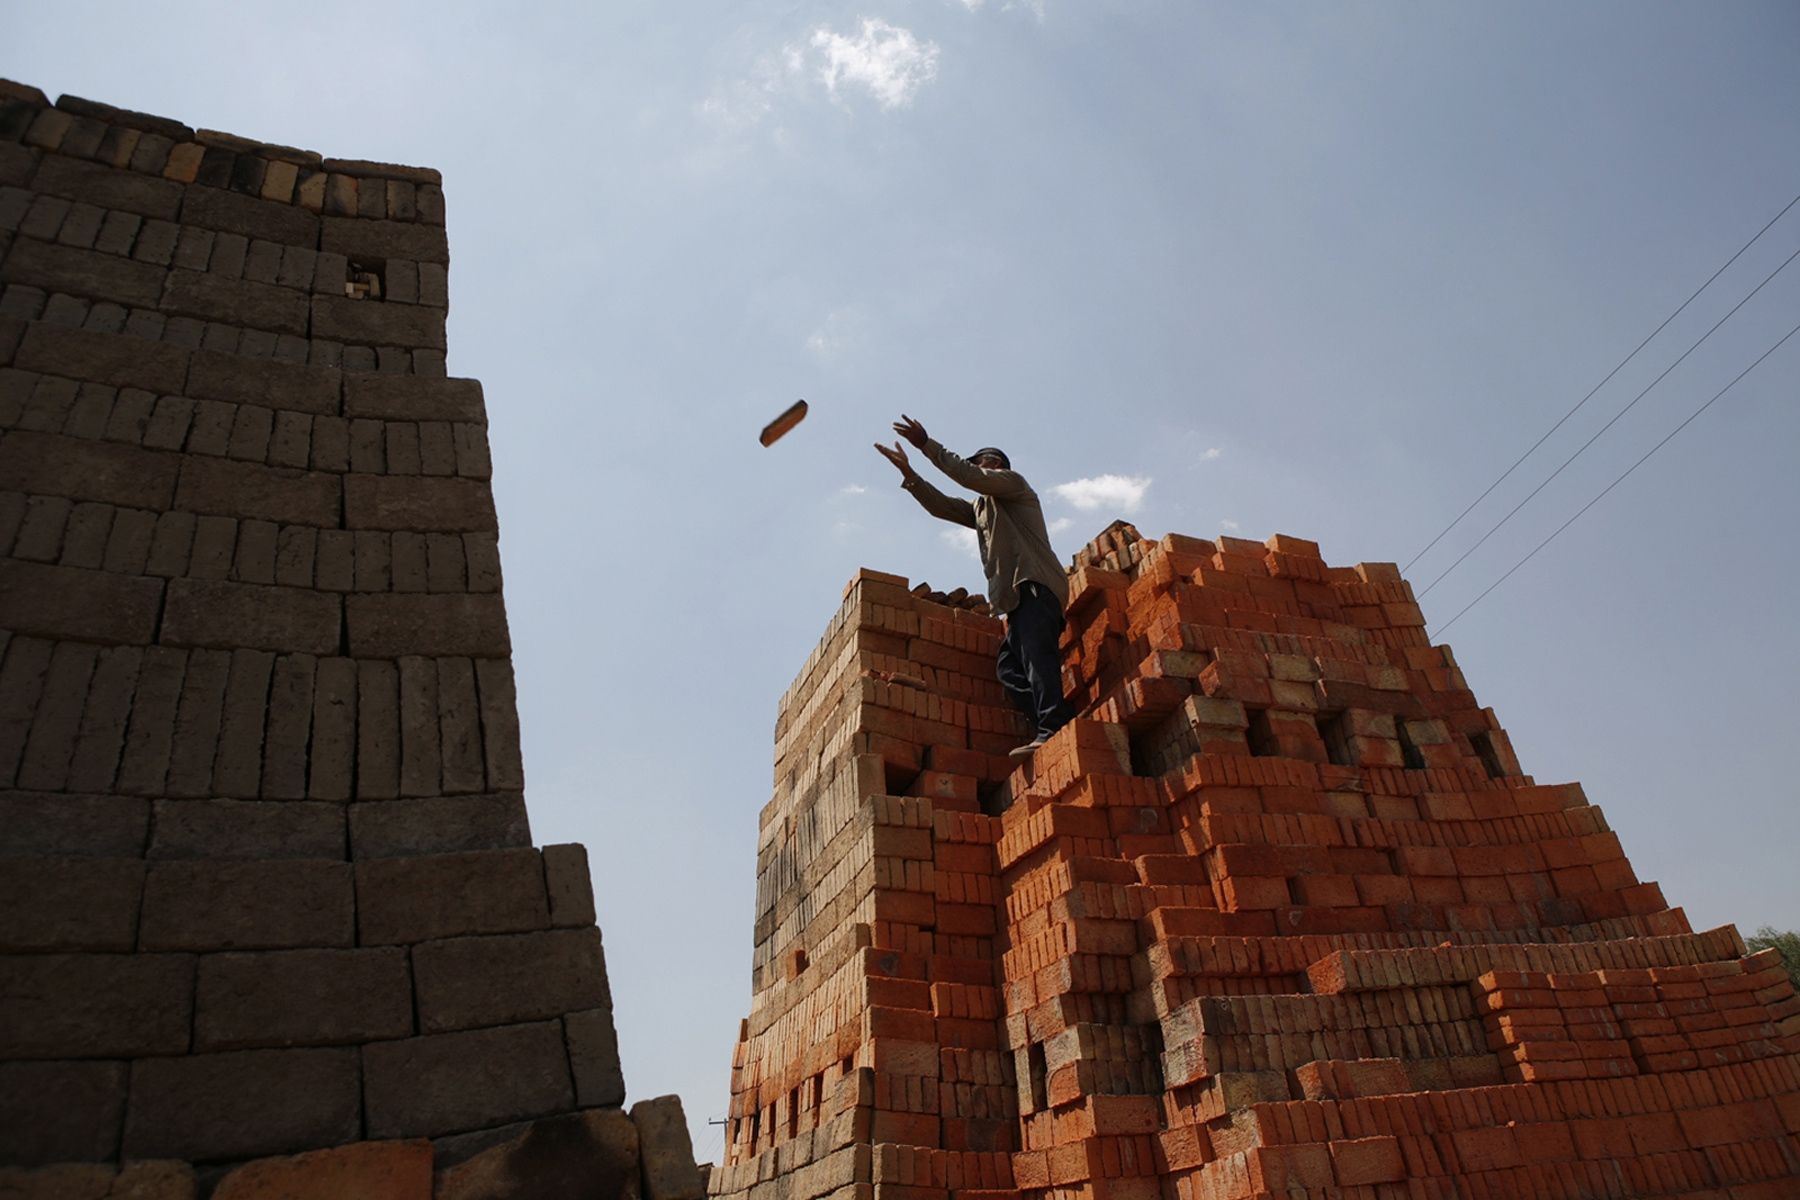 Brickmakers on the outskirts of Guadalajara build large ovens directly outside of their homes to fire bricks. In these impoverished communities, brickmakers will burn anything available, including low-cost toxic fuel, old tires and wood scraps.